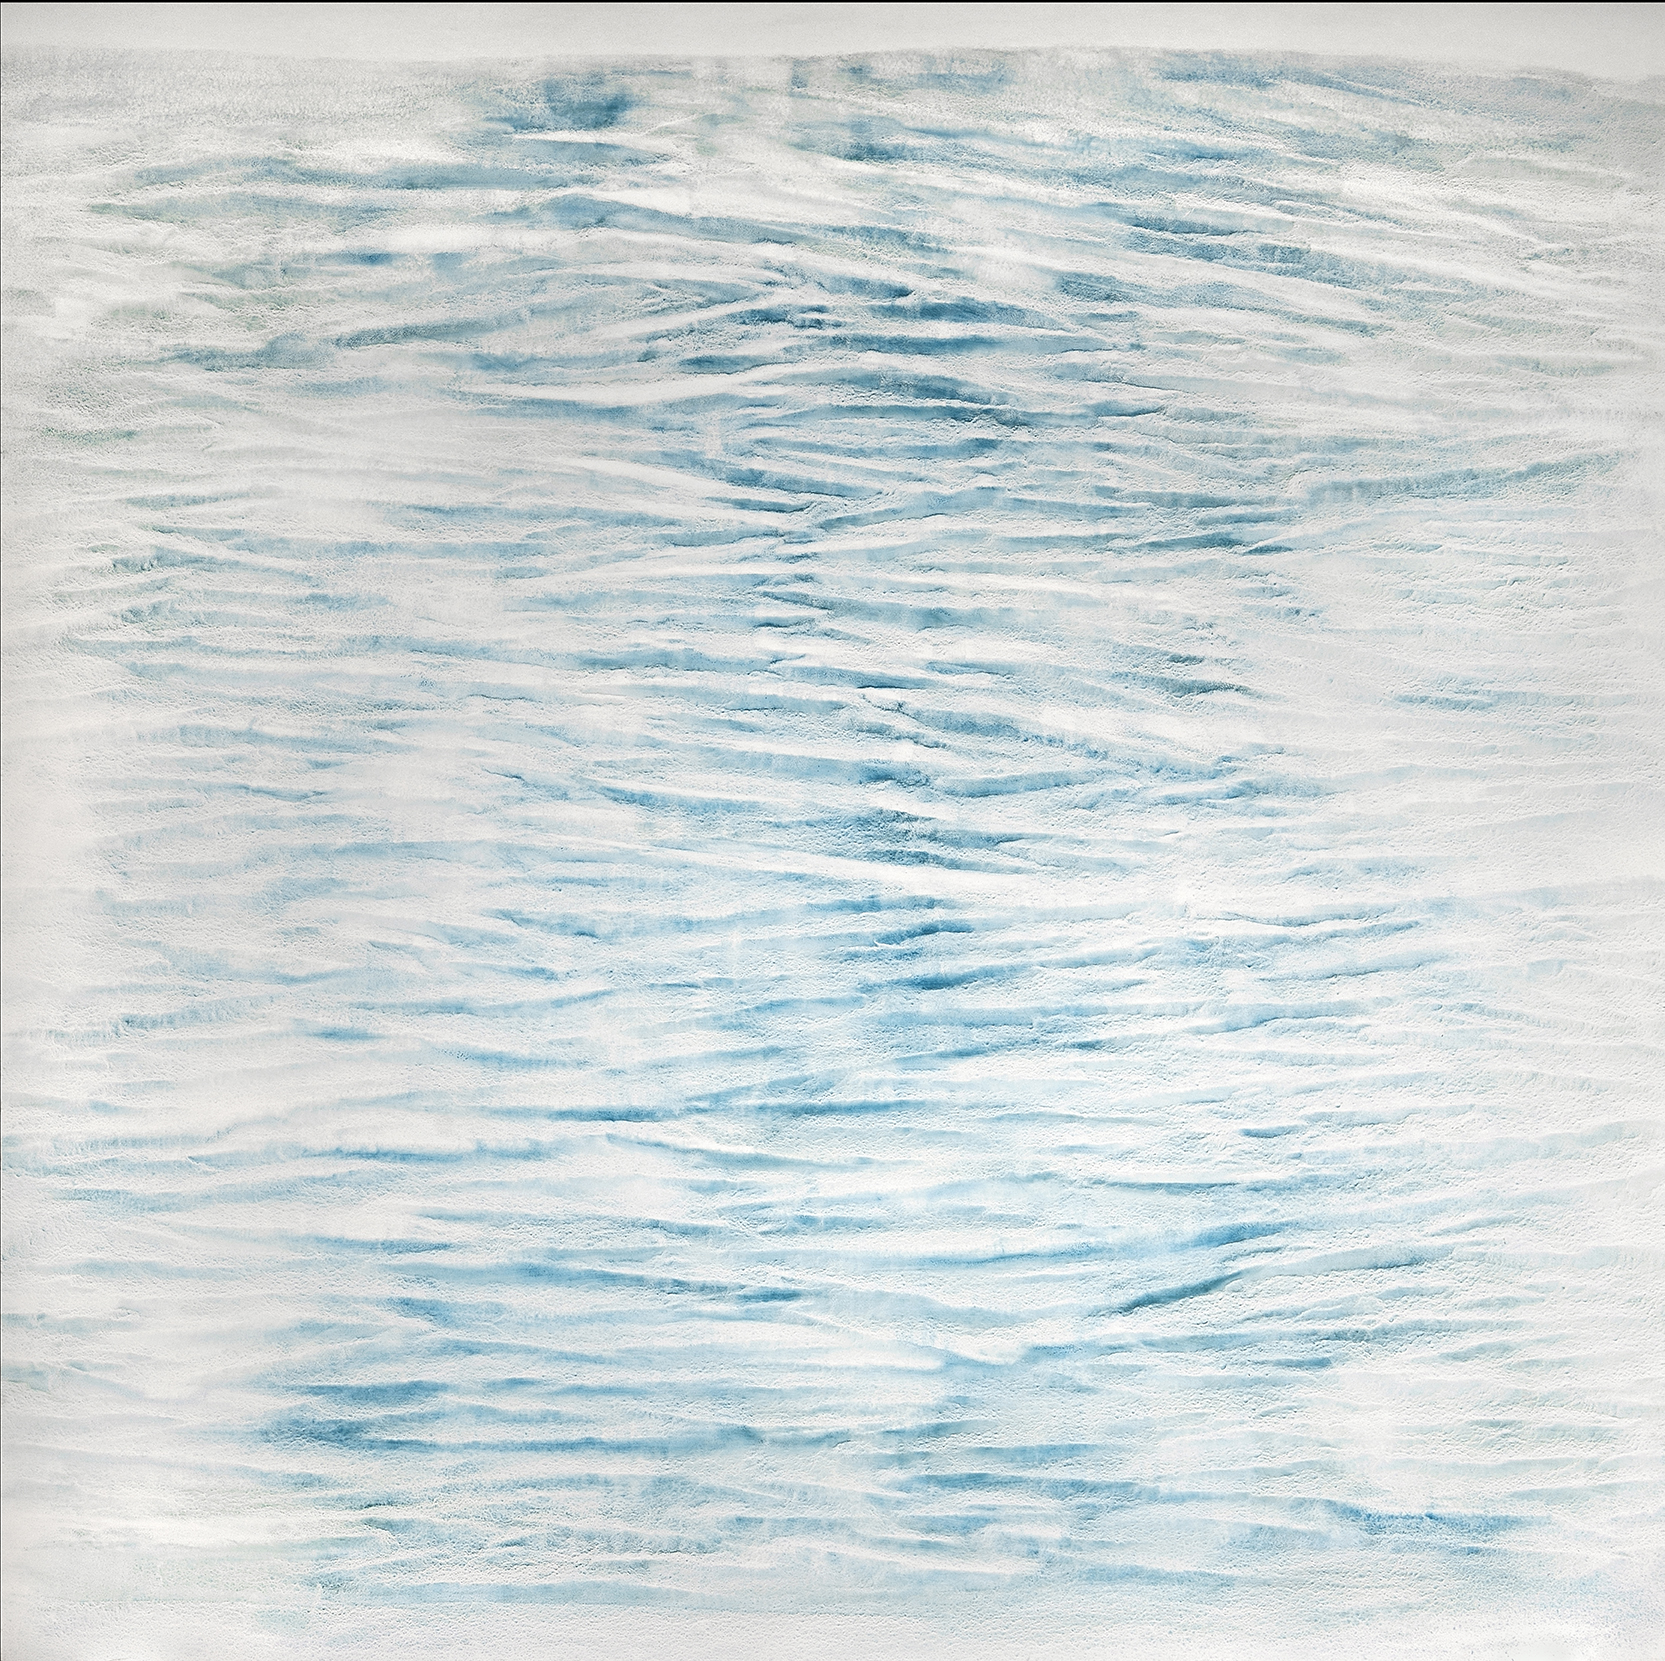 2016 North Sea #1343 pigment, oil, alkyd on canvas (Cerulean Blue) 66 x 66 inches 167.64 x 167.64 cm © Vicky Colombet, all rights reserved.